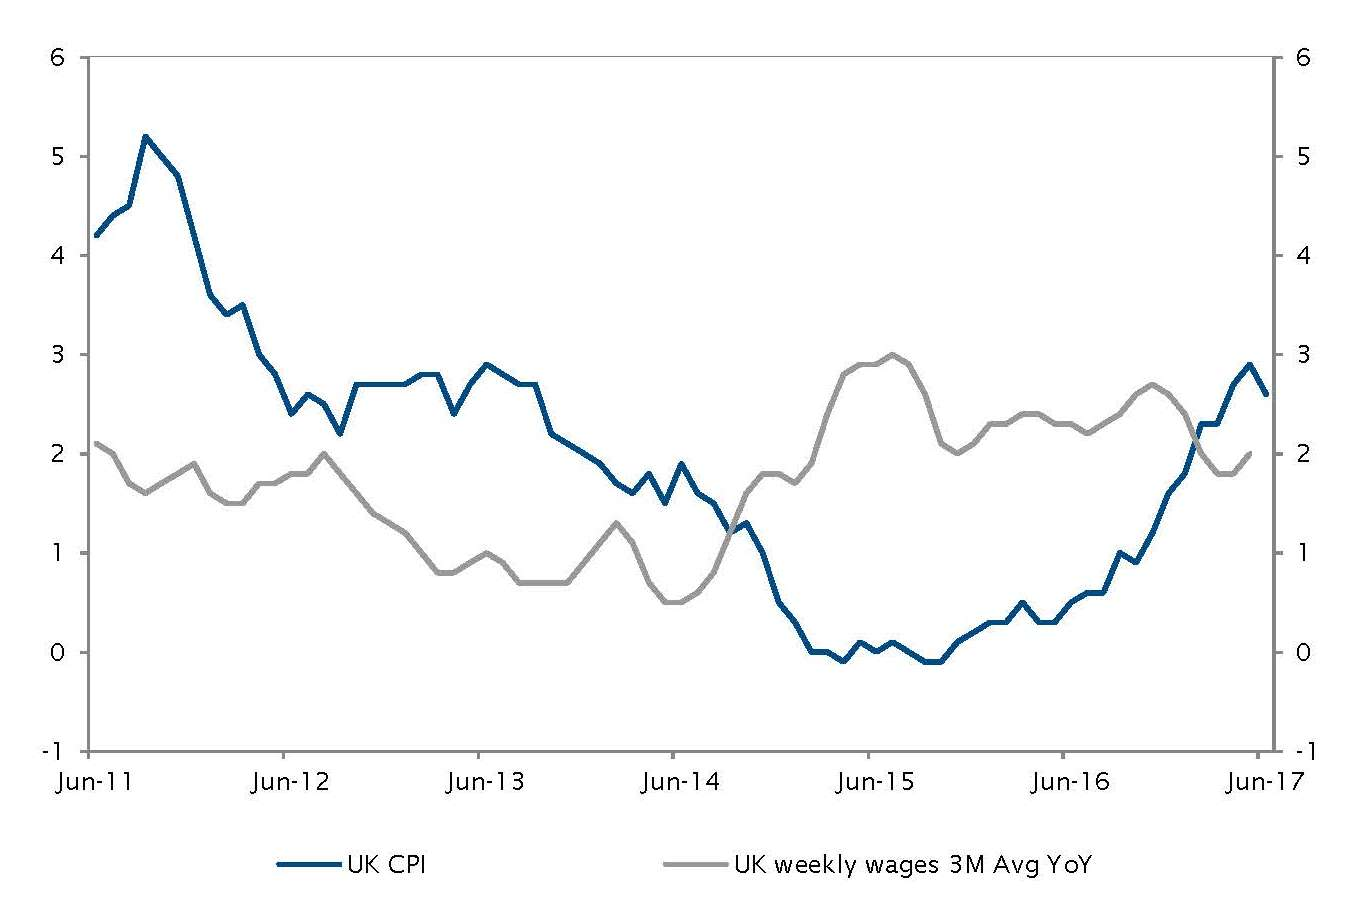 UK inflation slowdown and wages growth under pressure